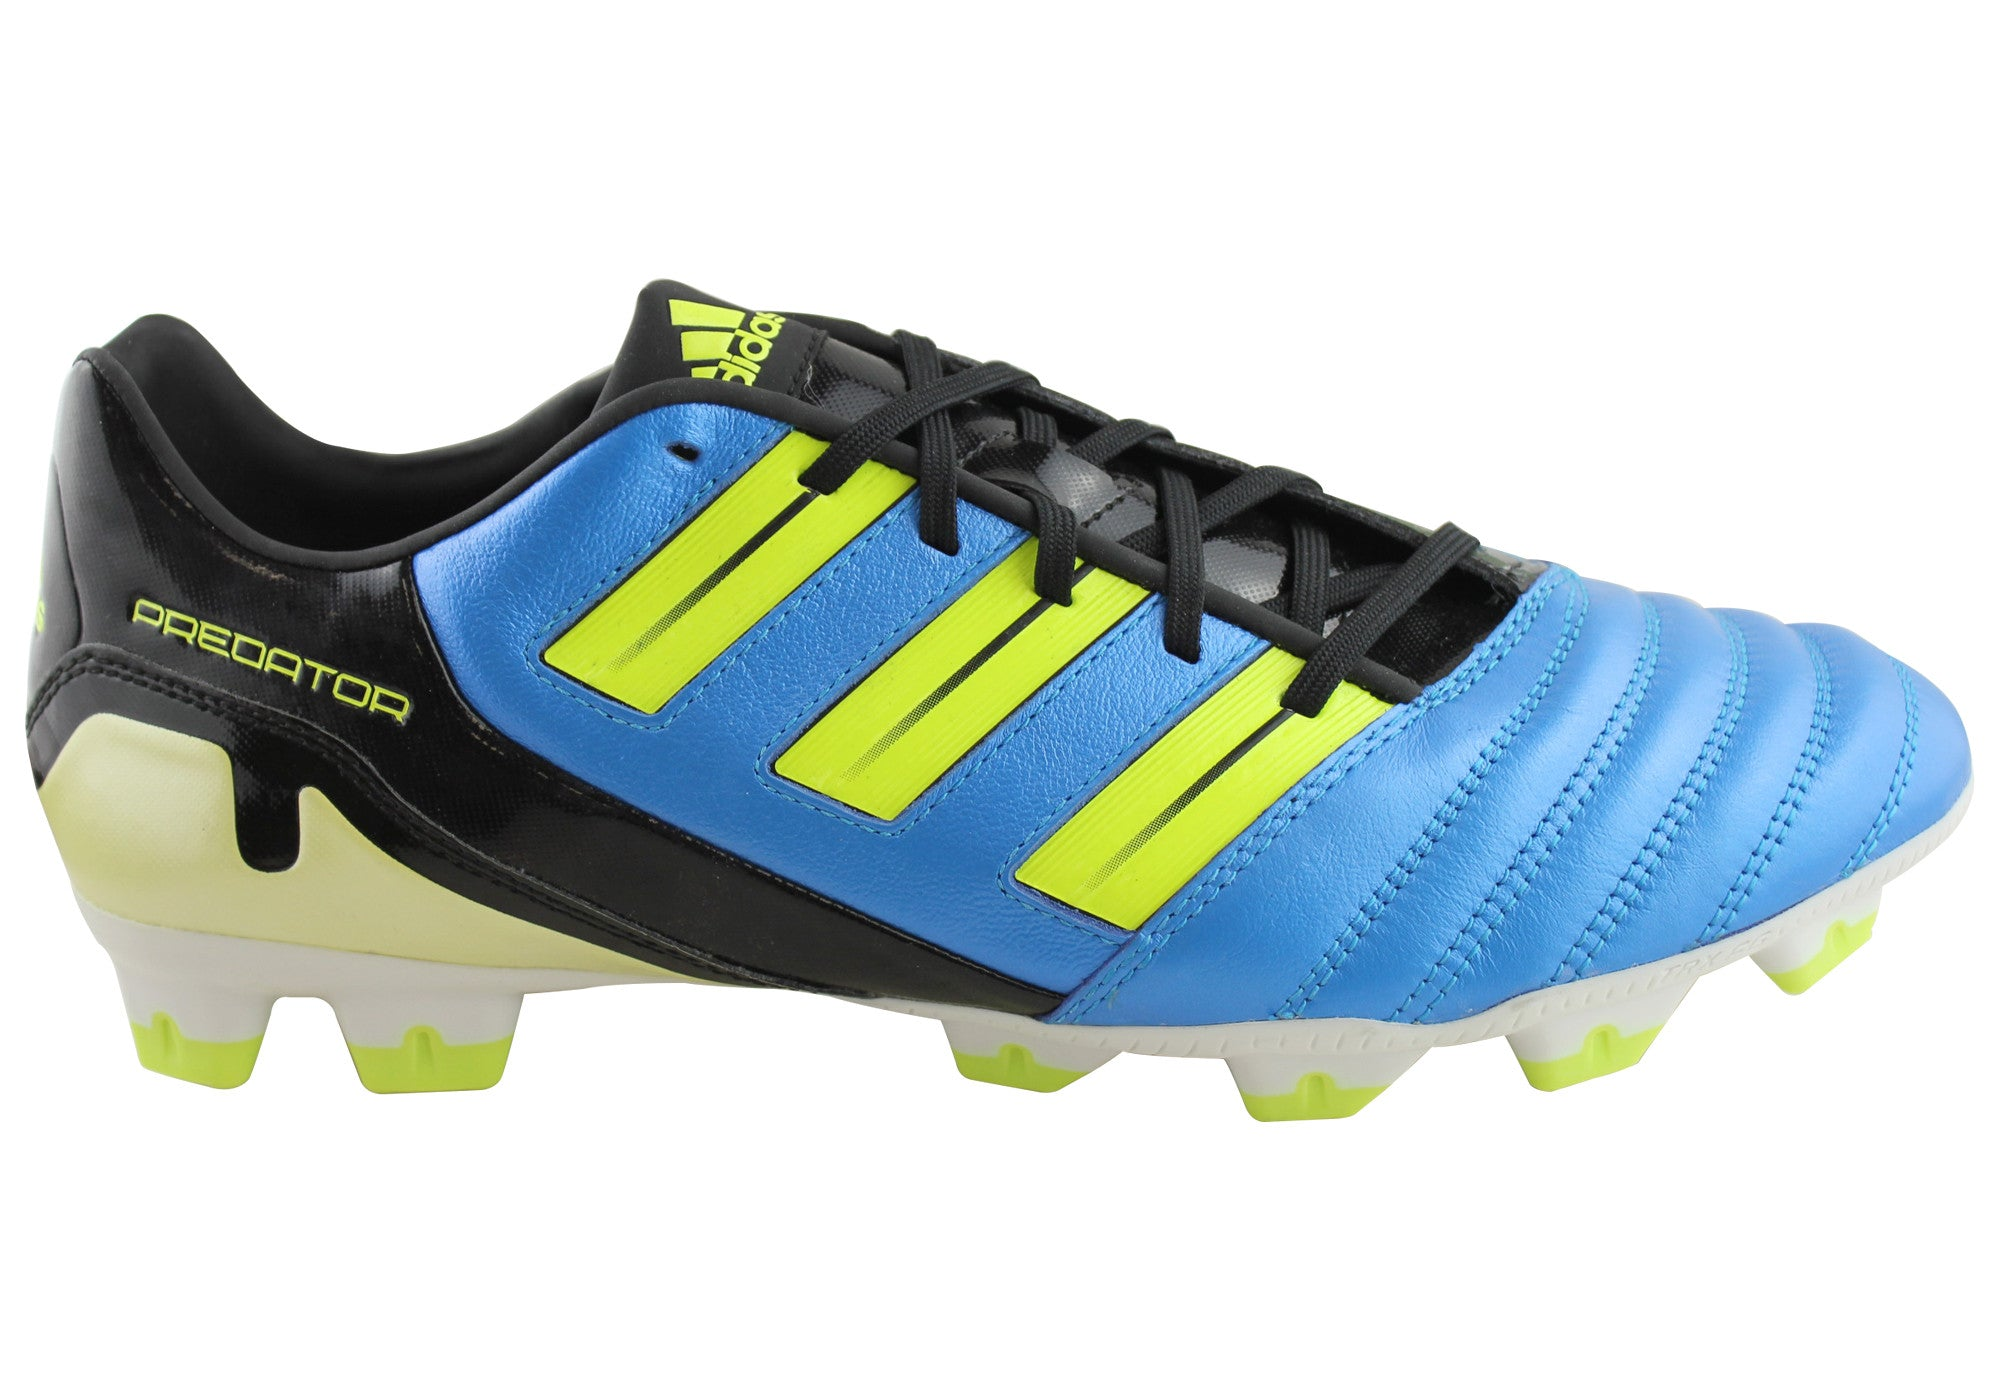 plus récent 2c067 9a52e Adidas Predator Absolion TRX FG Football/Soccer/Rugby Boots